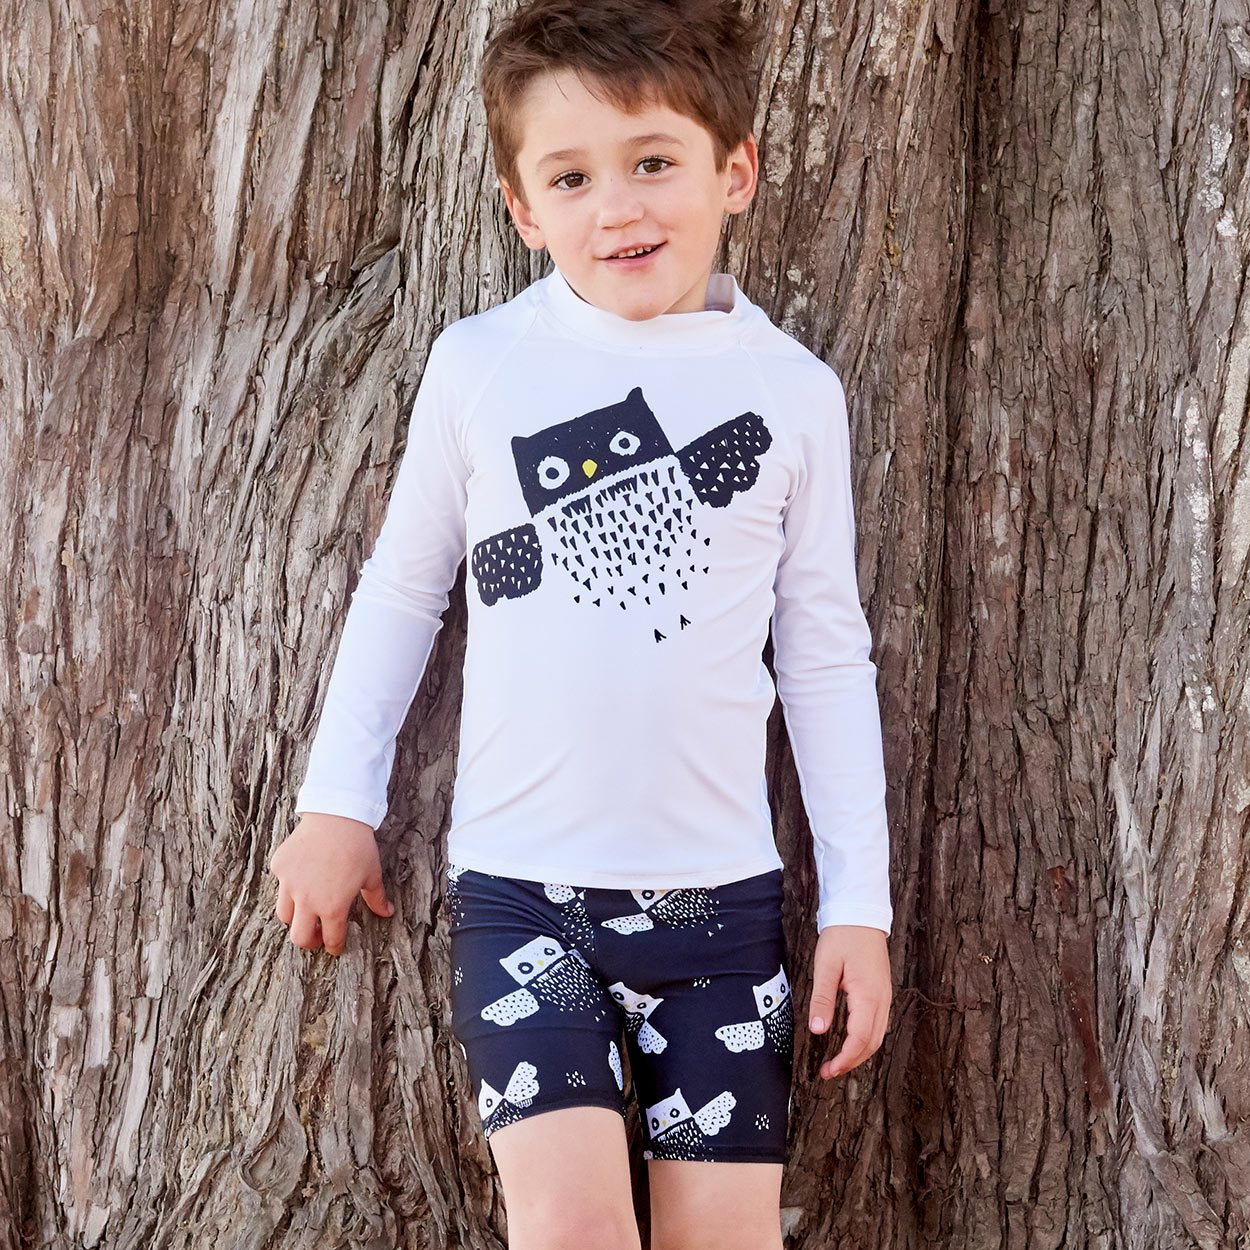 Diagonal Owl Long Sleeve Rash Guard Top Upf50 Kids Boys Girls Size 2 12 White Black Unisex Boy Touching A Brown Tree Sunpoplife